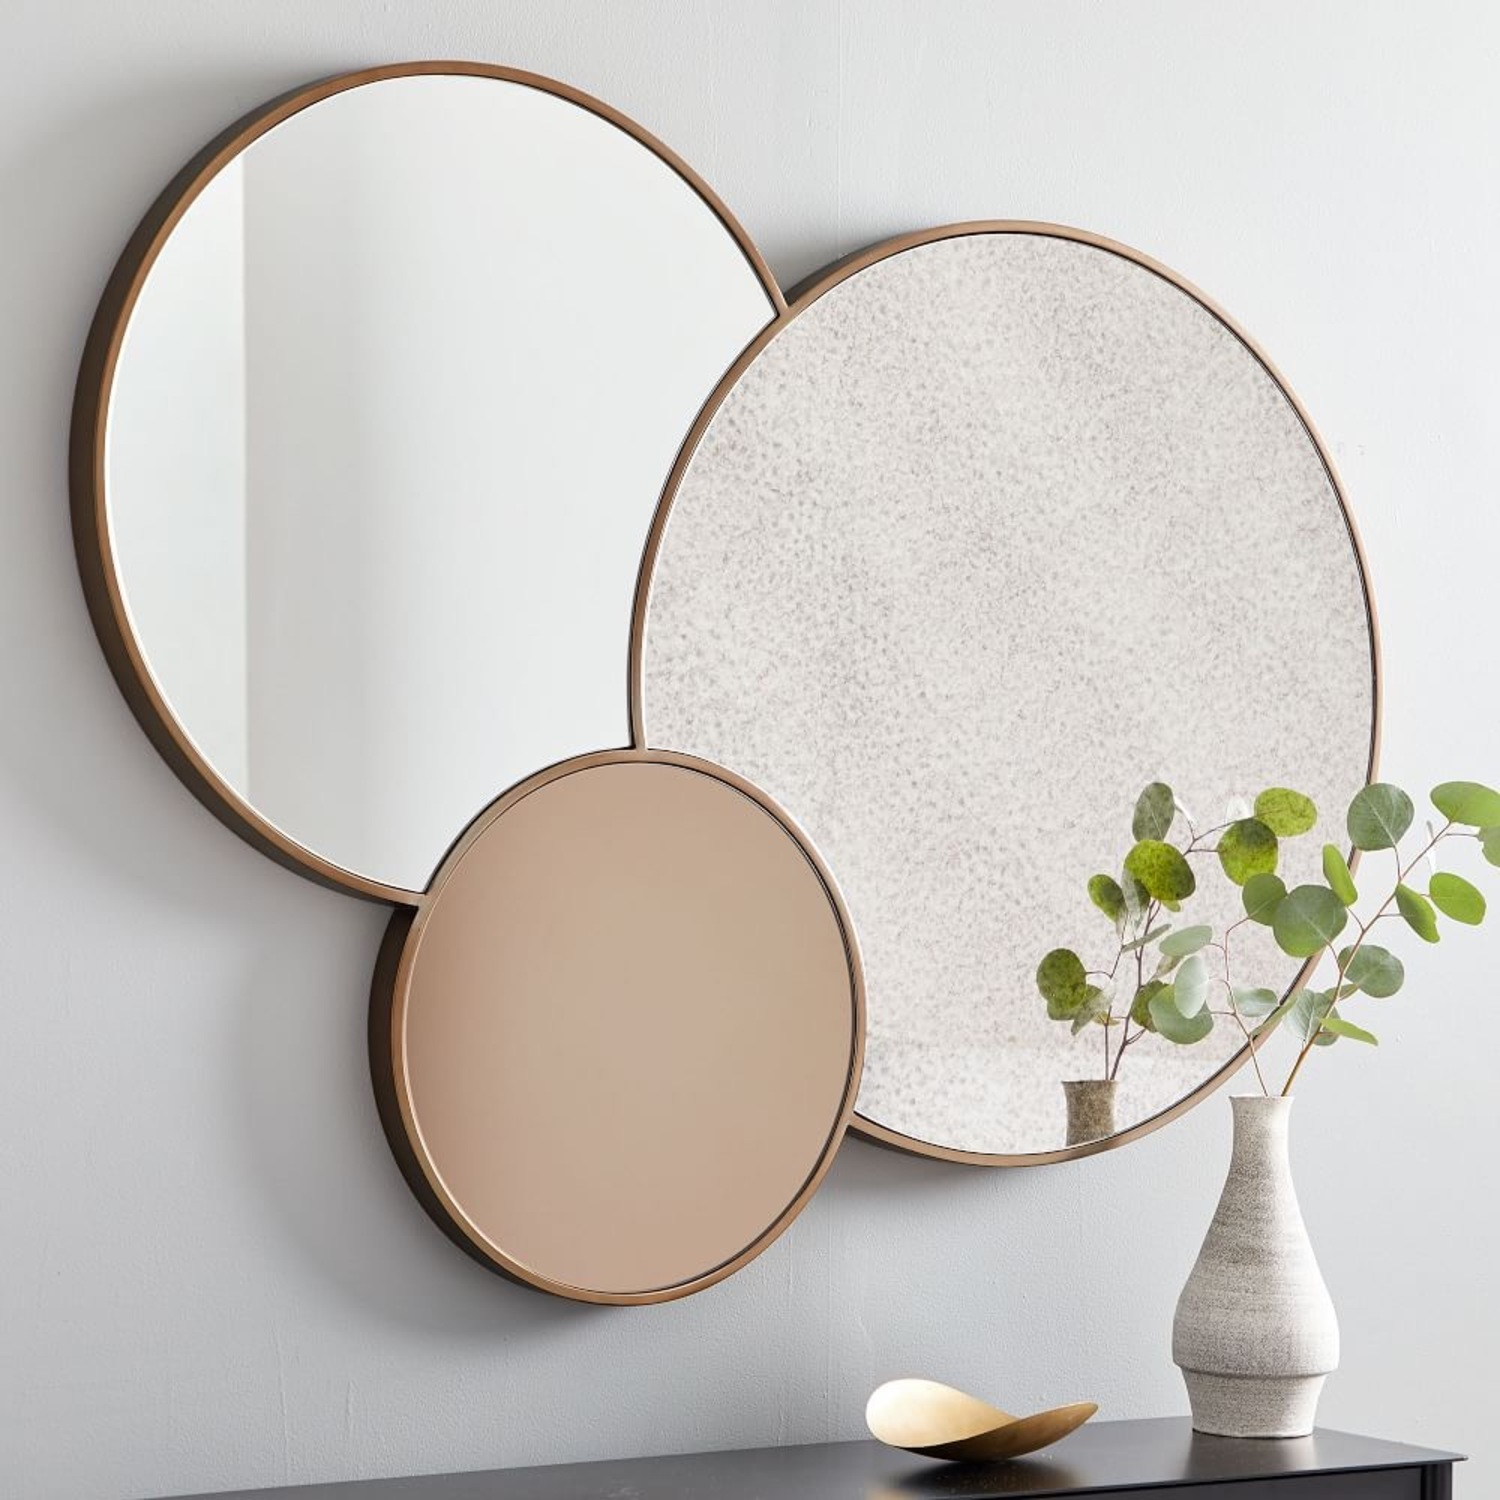 West Elm Foxed Overlapping Trio Mirror - image-1